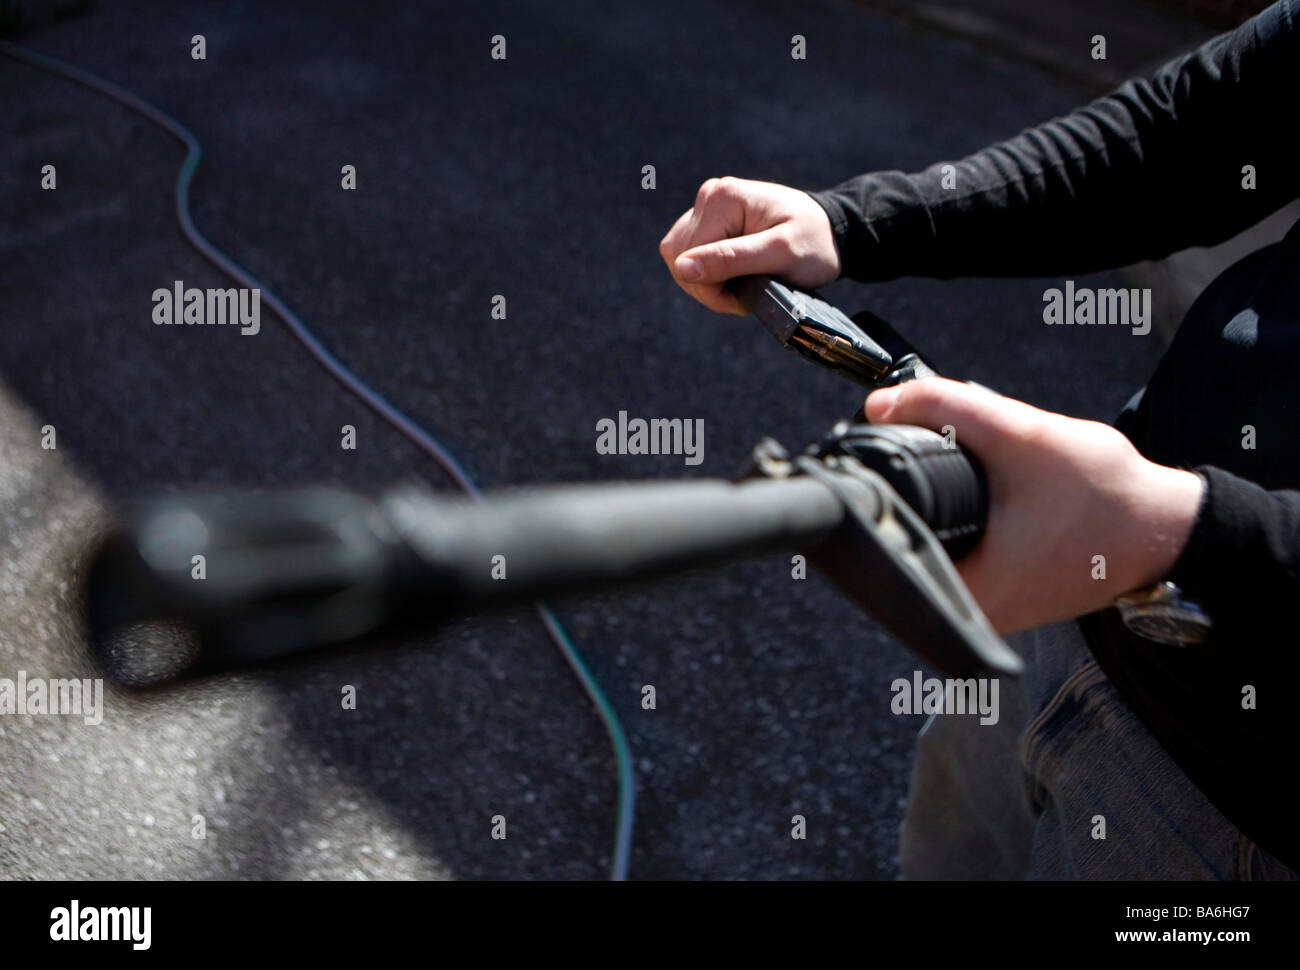 12 April 2009 Frederick Maryland A Maryland gun owner demonstrates loading an AR 15 assault rifle - Stock Image